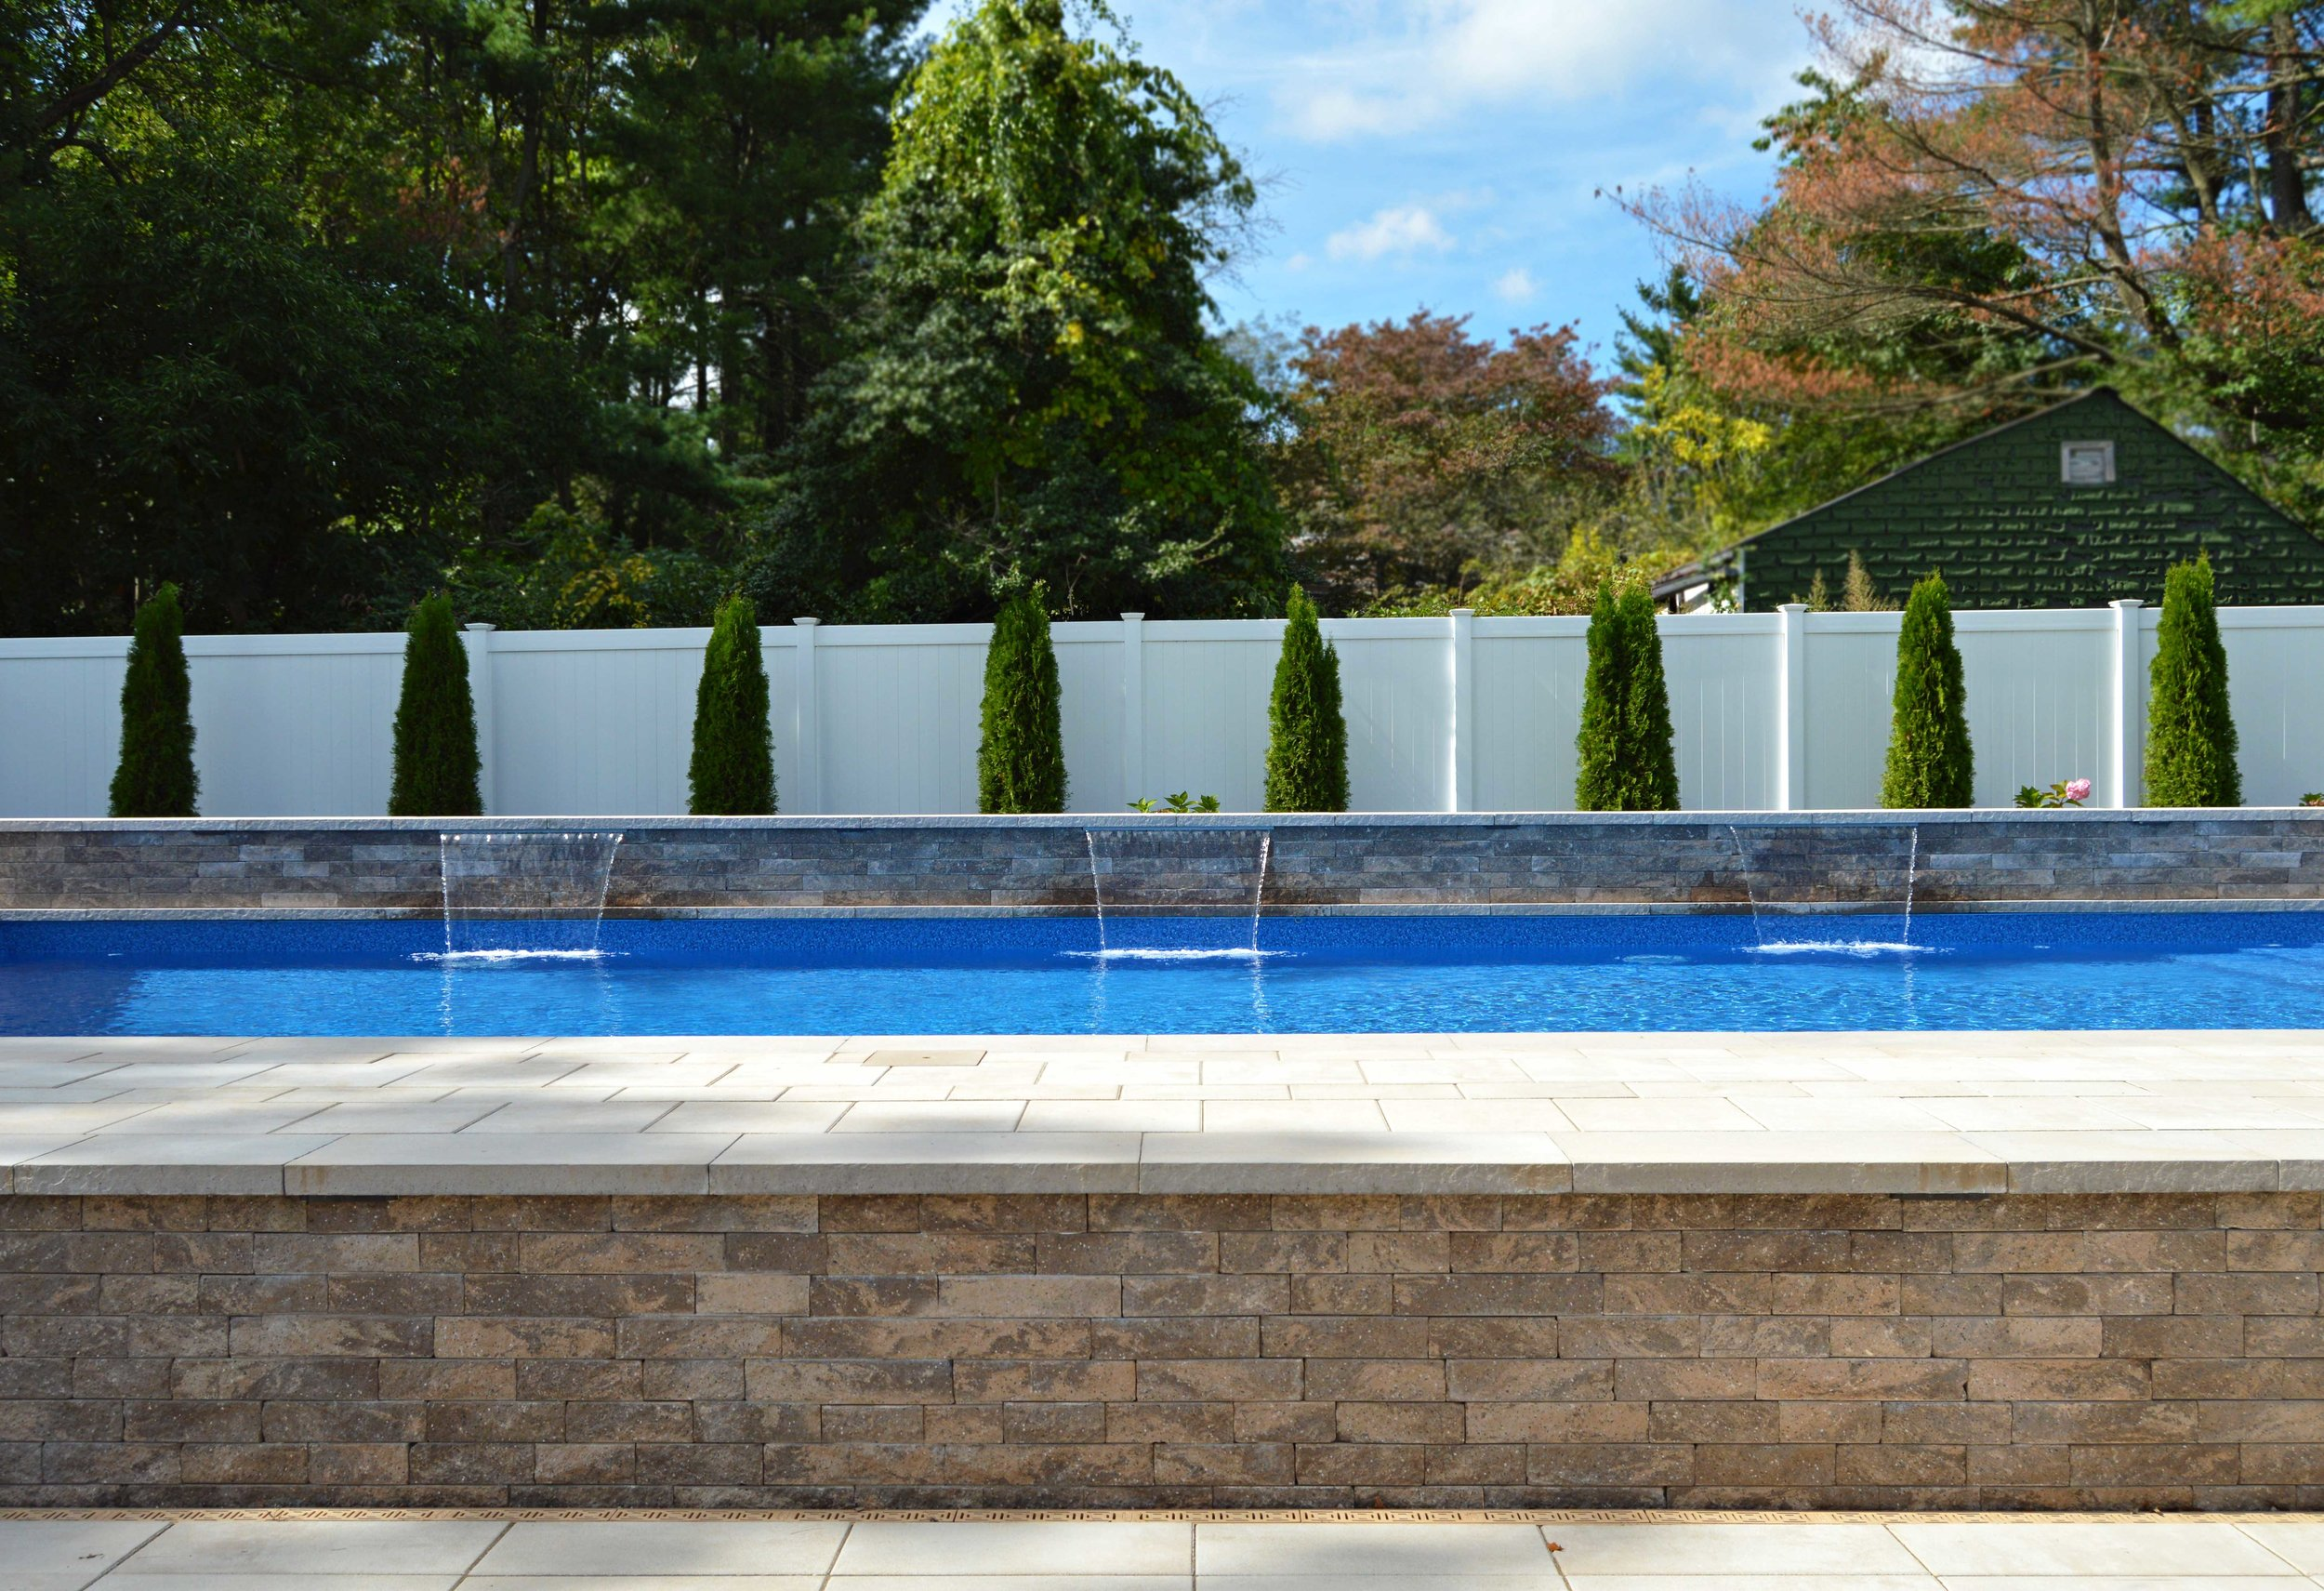 Landscape design with poolside in Hauppauge, NY